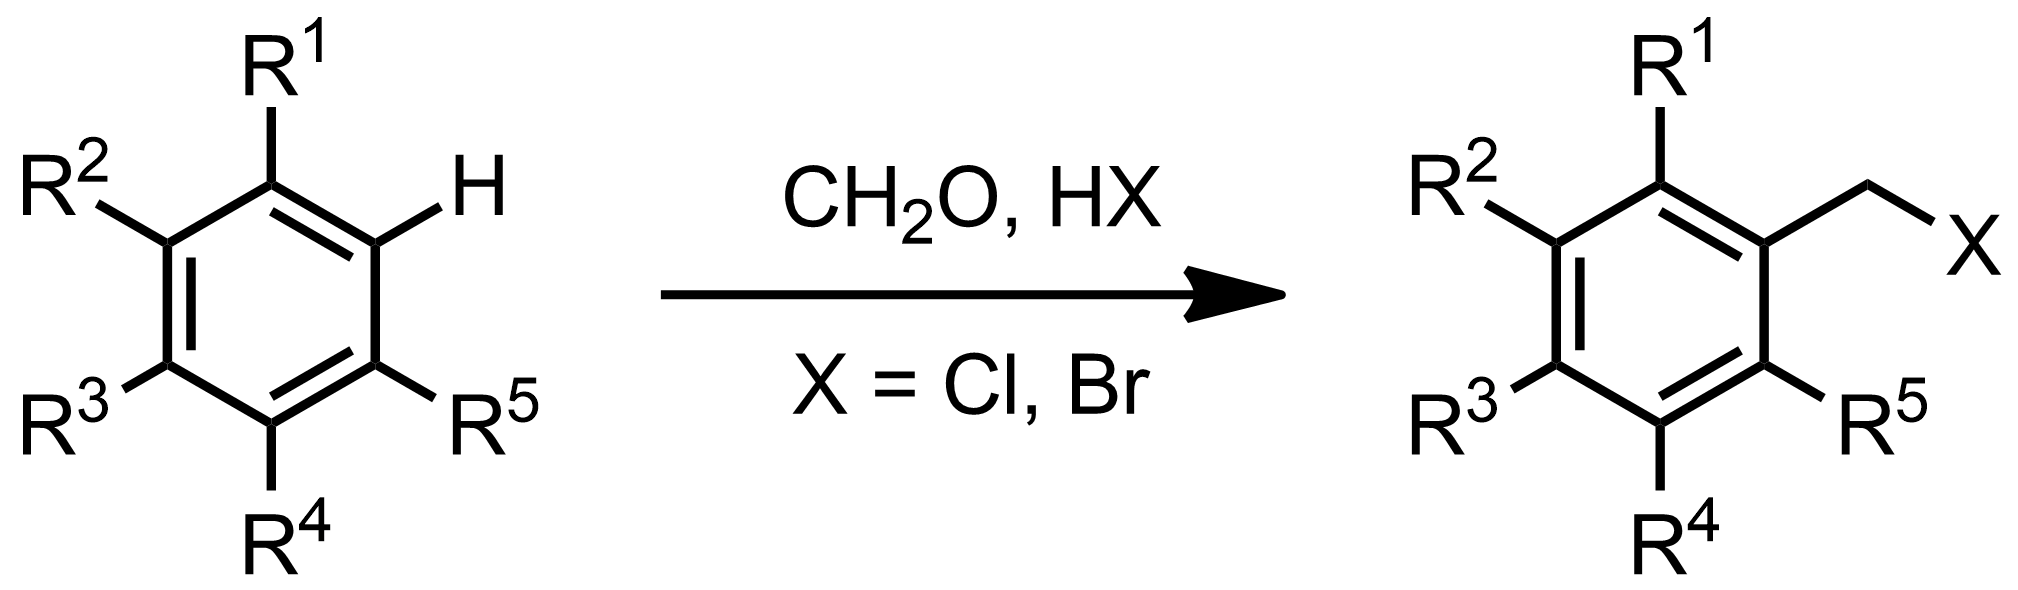 Schematic representation of the Blanc Halomethylation.